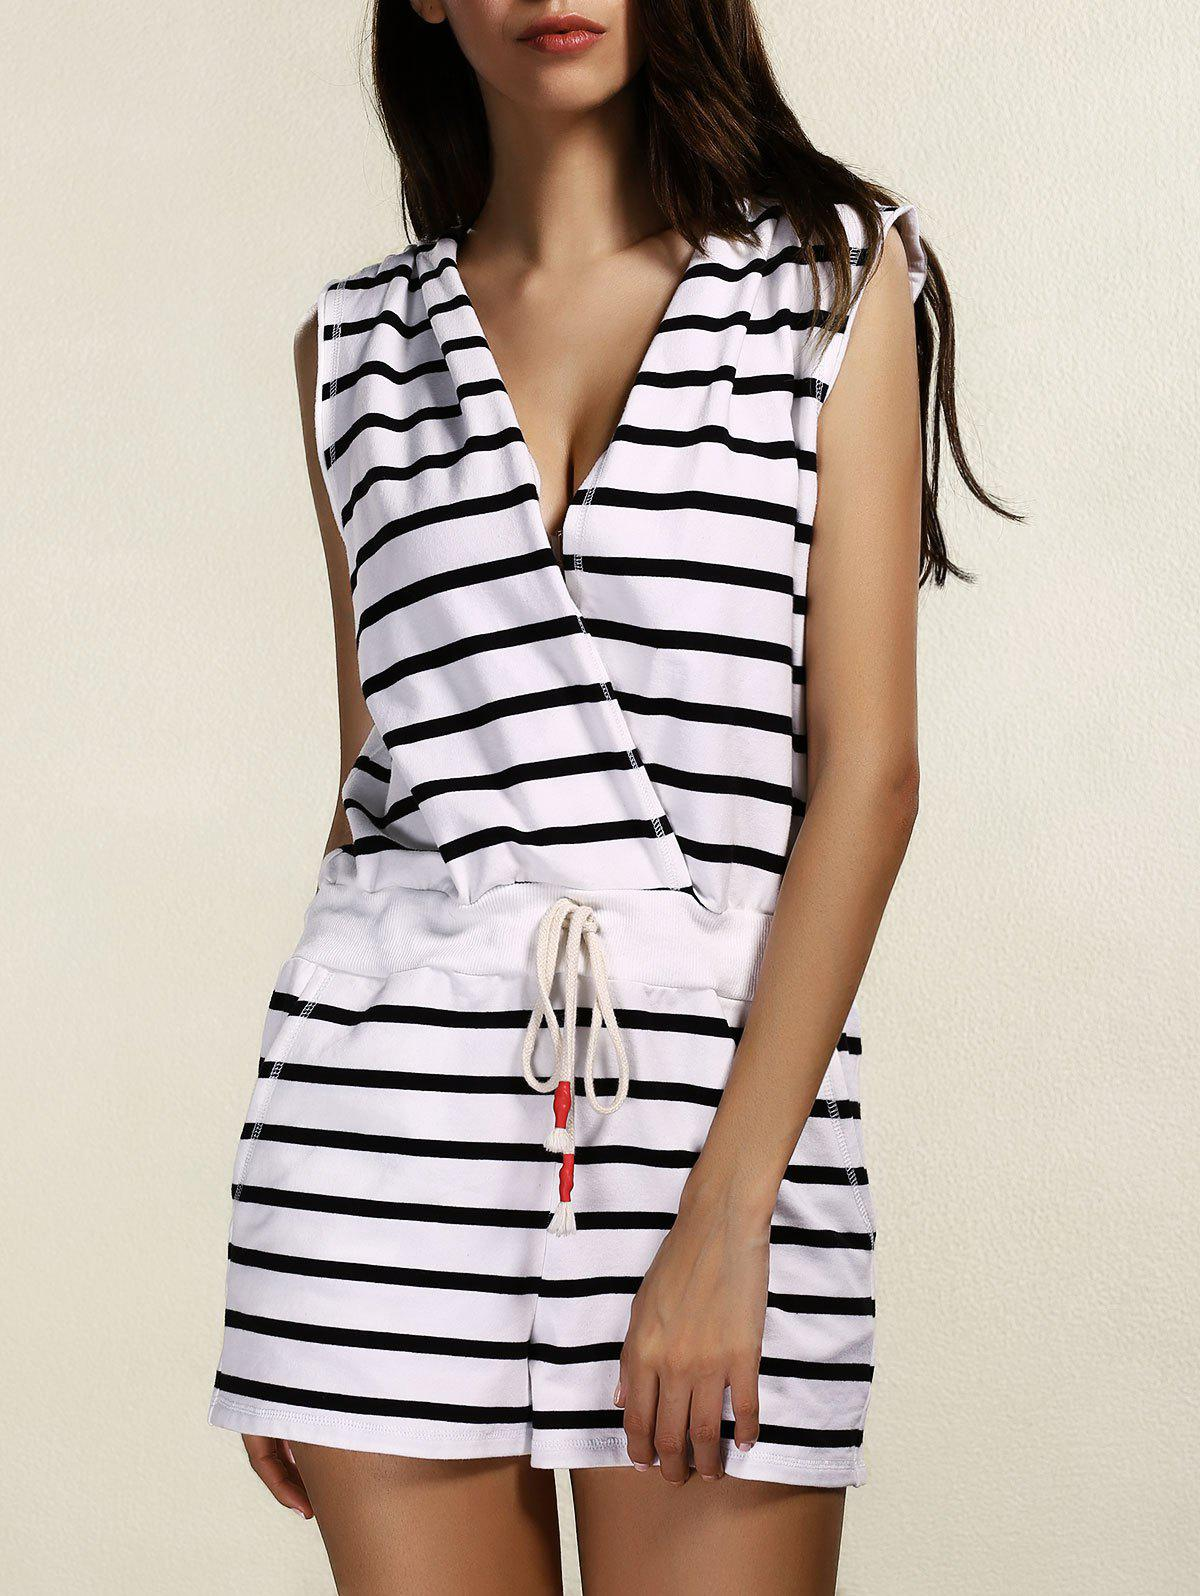 Stylish Women's Striped Hooded Cover-Up Romper